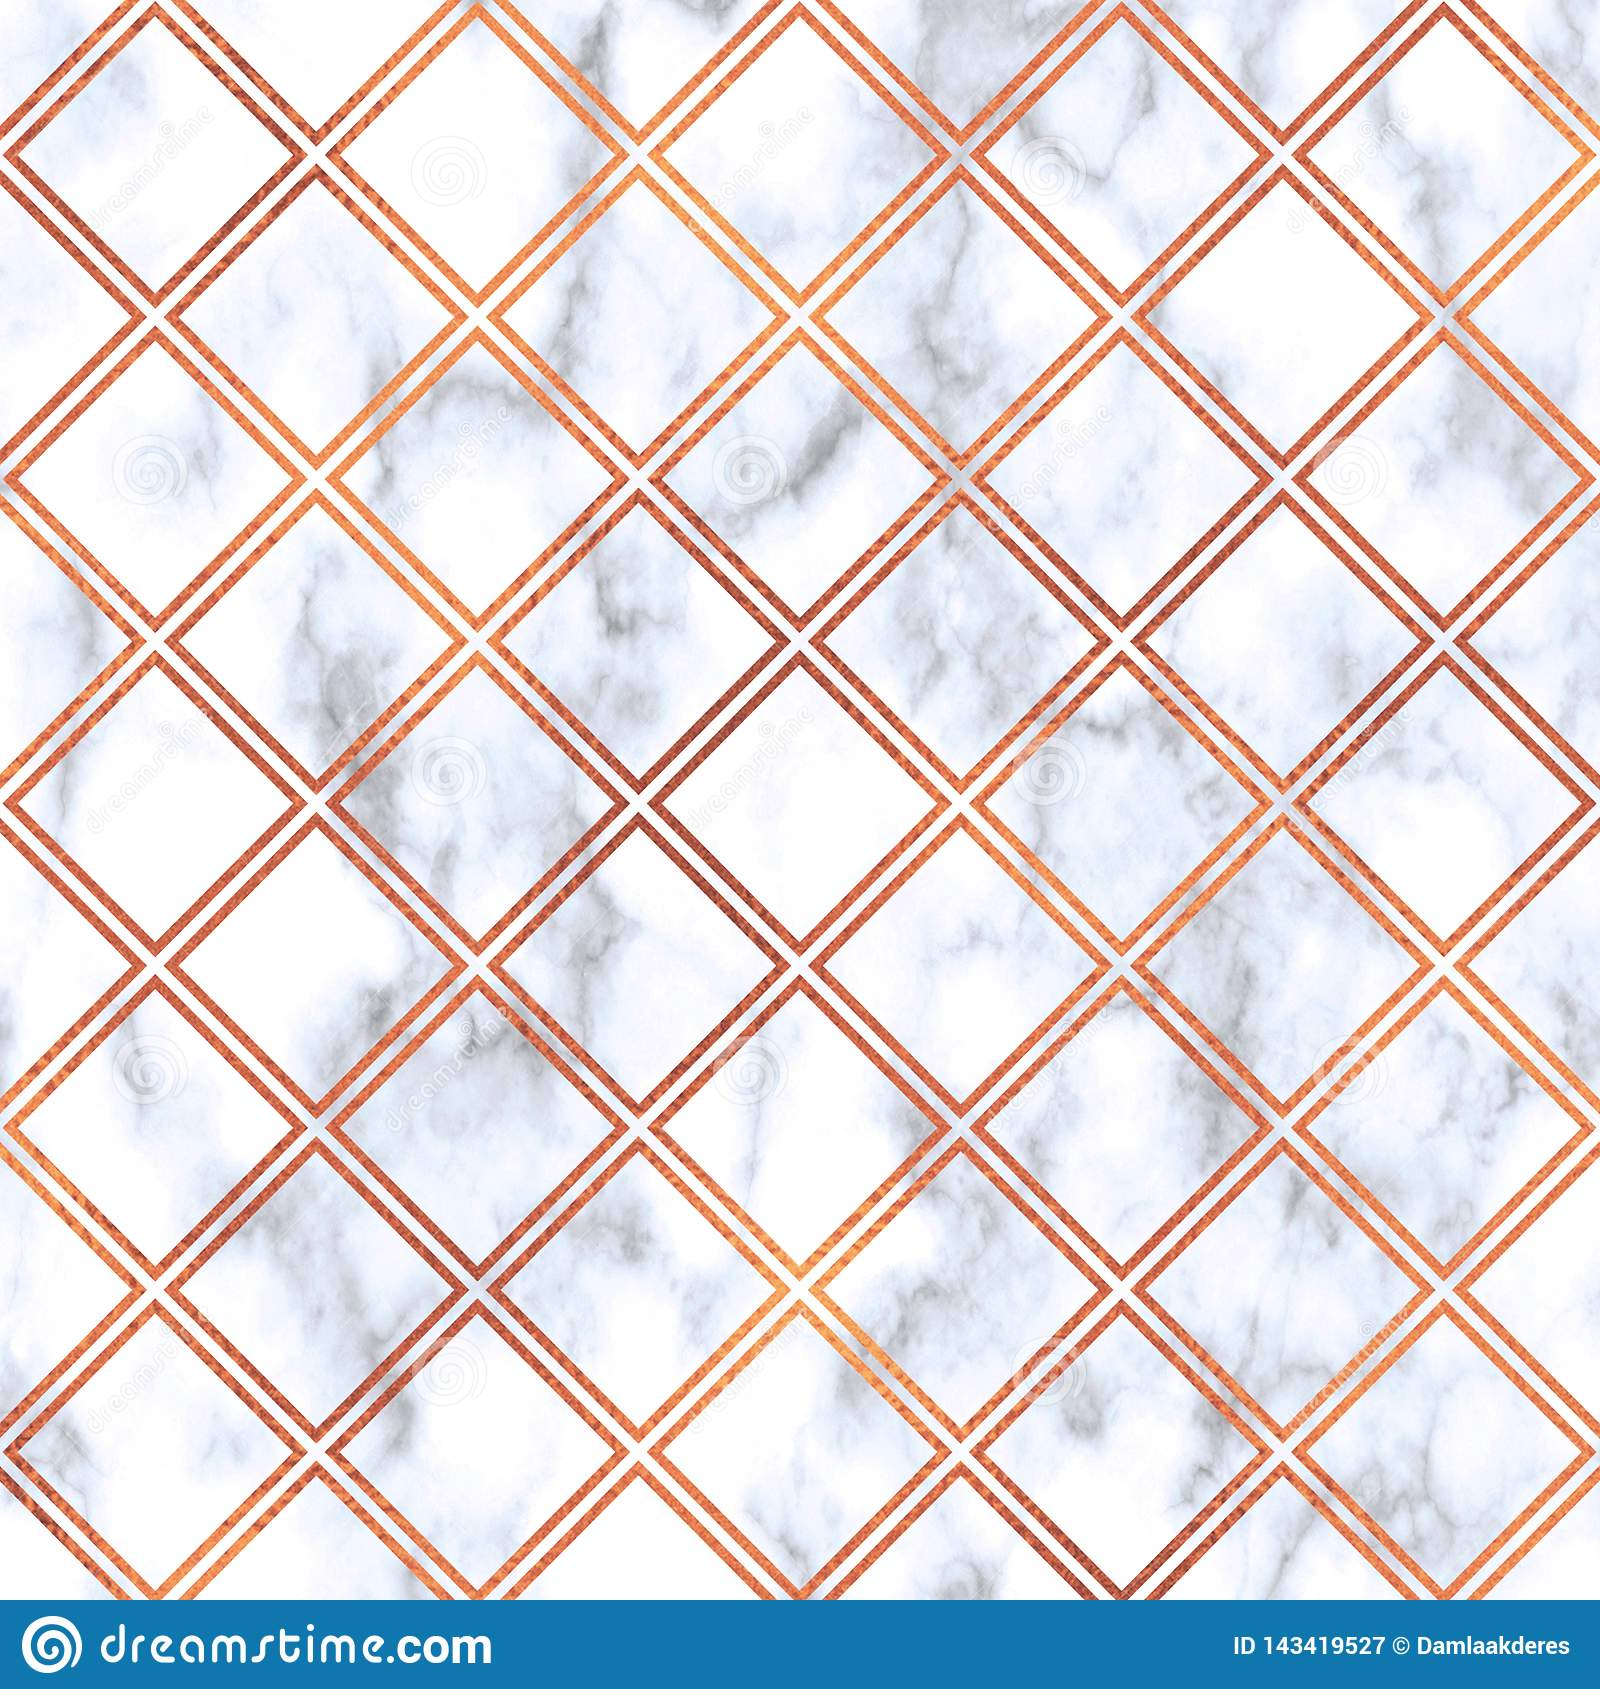 Rose Gold Geometric Pattern On Marble Background Rose Gold Texture Rose Gold Geometric Marble Pattern Rose Gold Marble Wallpaper Stock Illustration Illustration Of Marble Digital 143419527